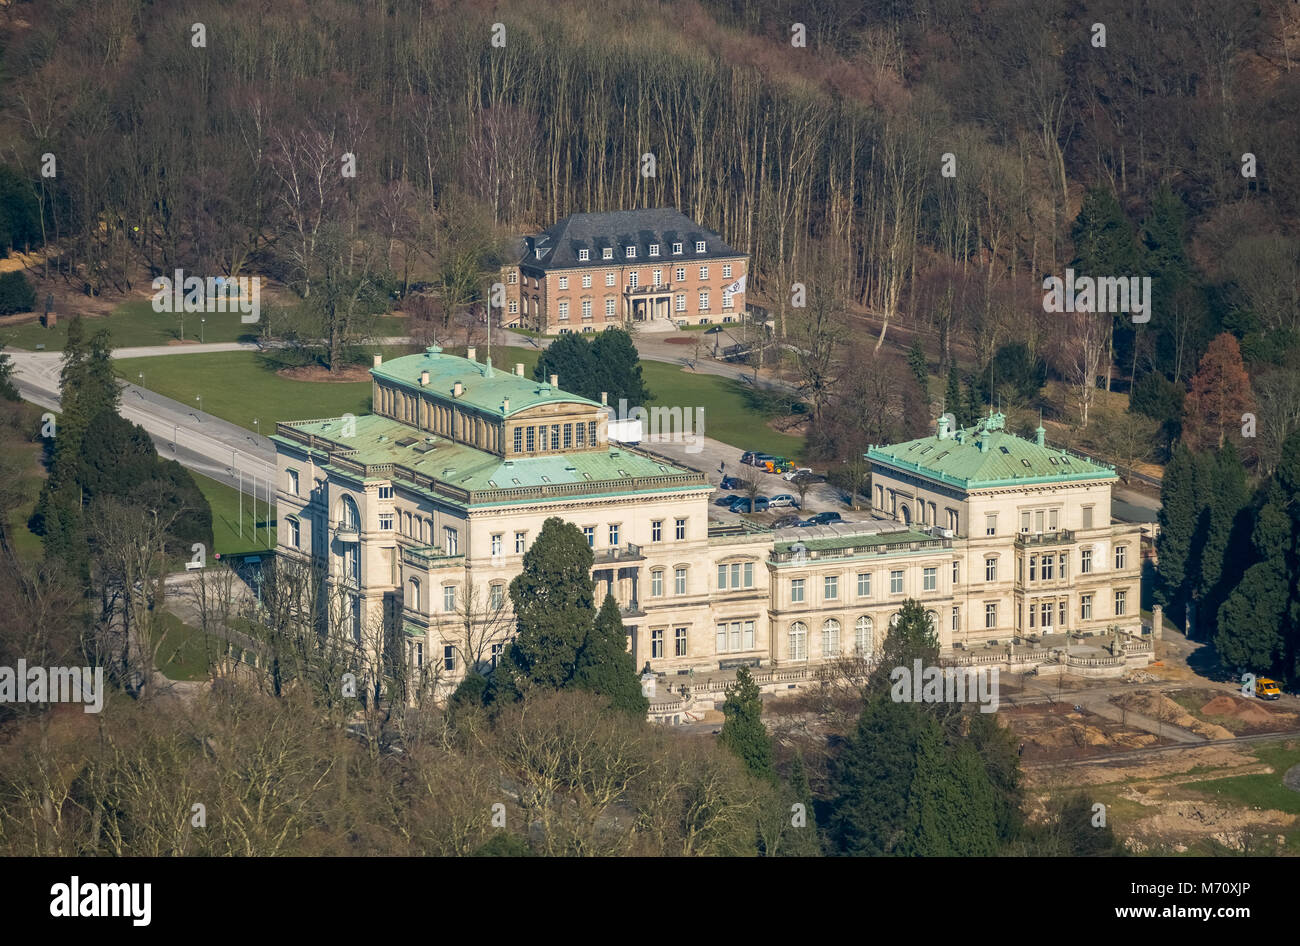 Villa Huegel, former family home of the Krupp family, above, Baldeneysee and rowing course ETUF, in Essen in NRW. - Stock Image